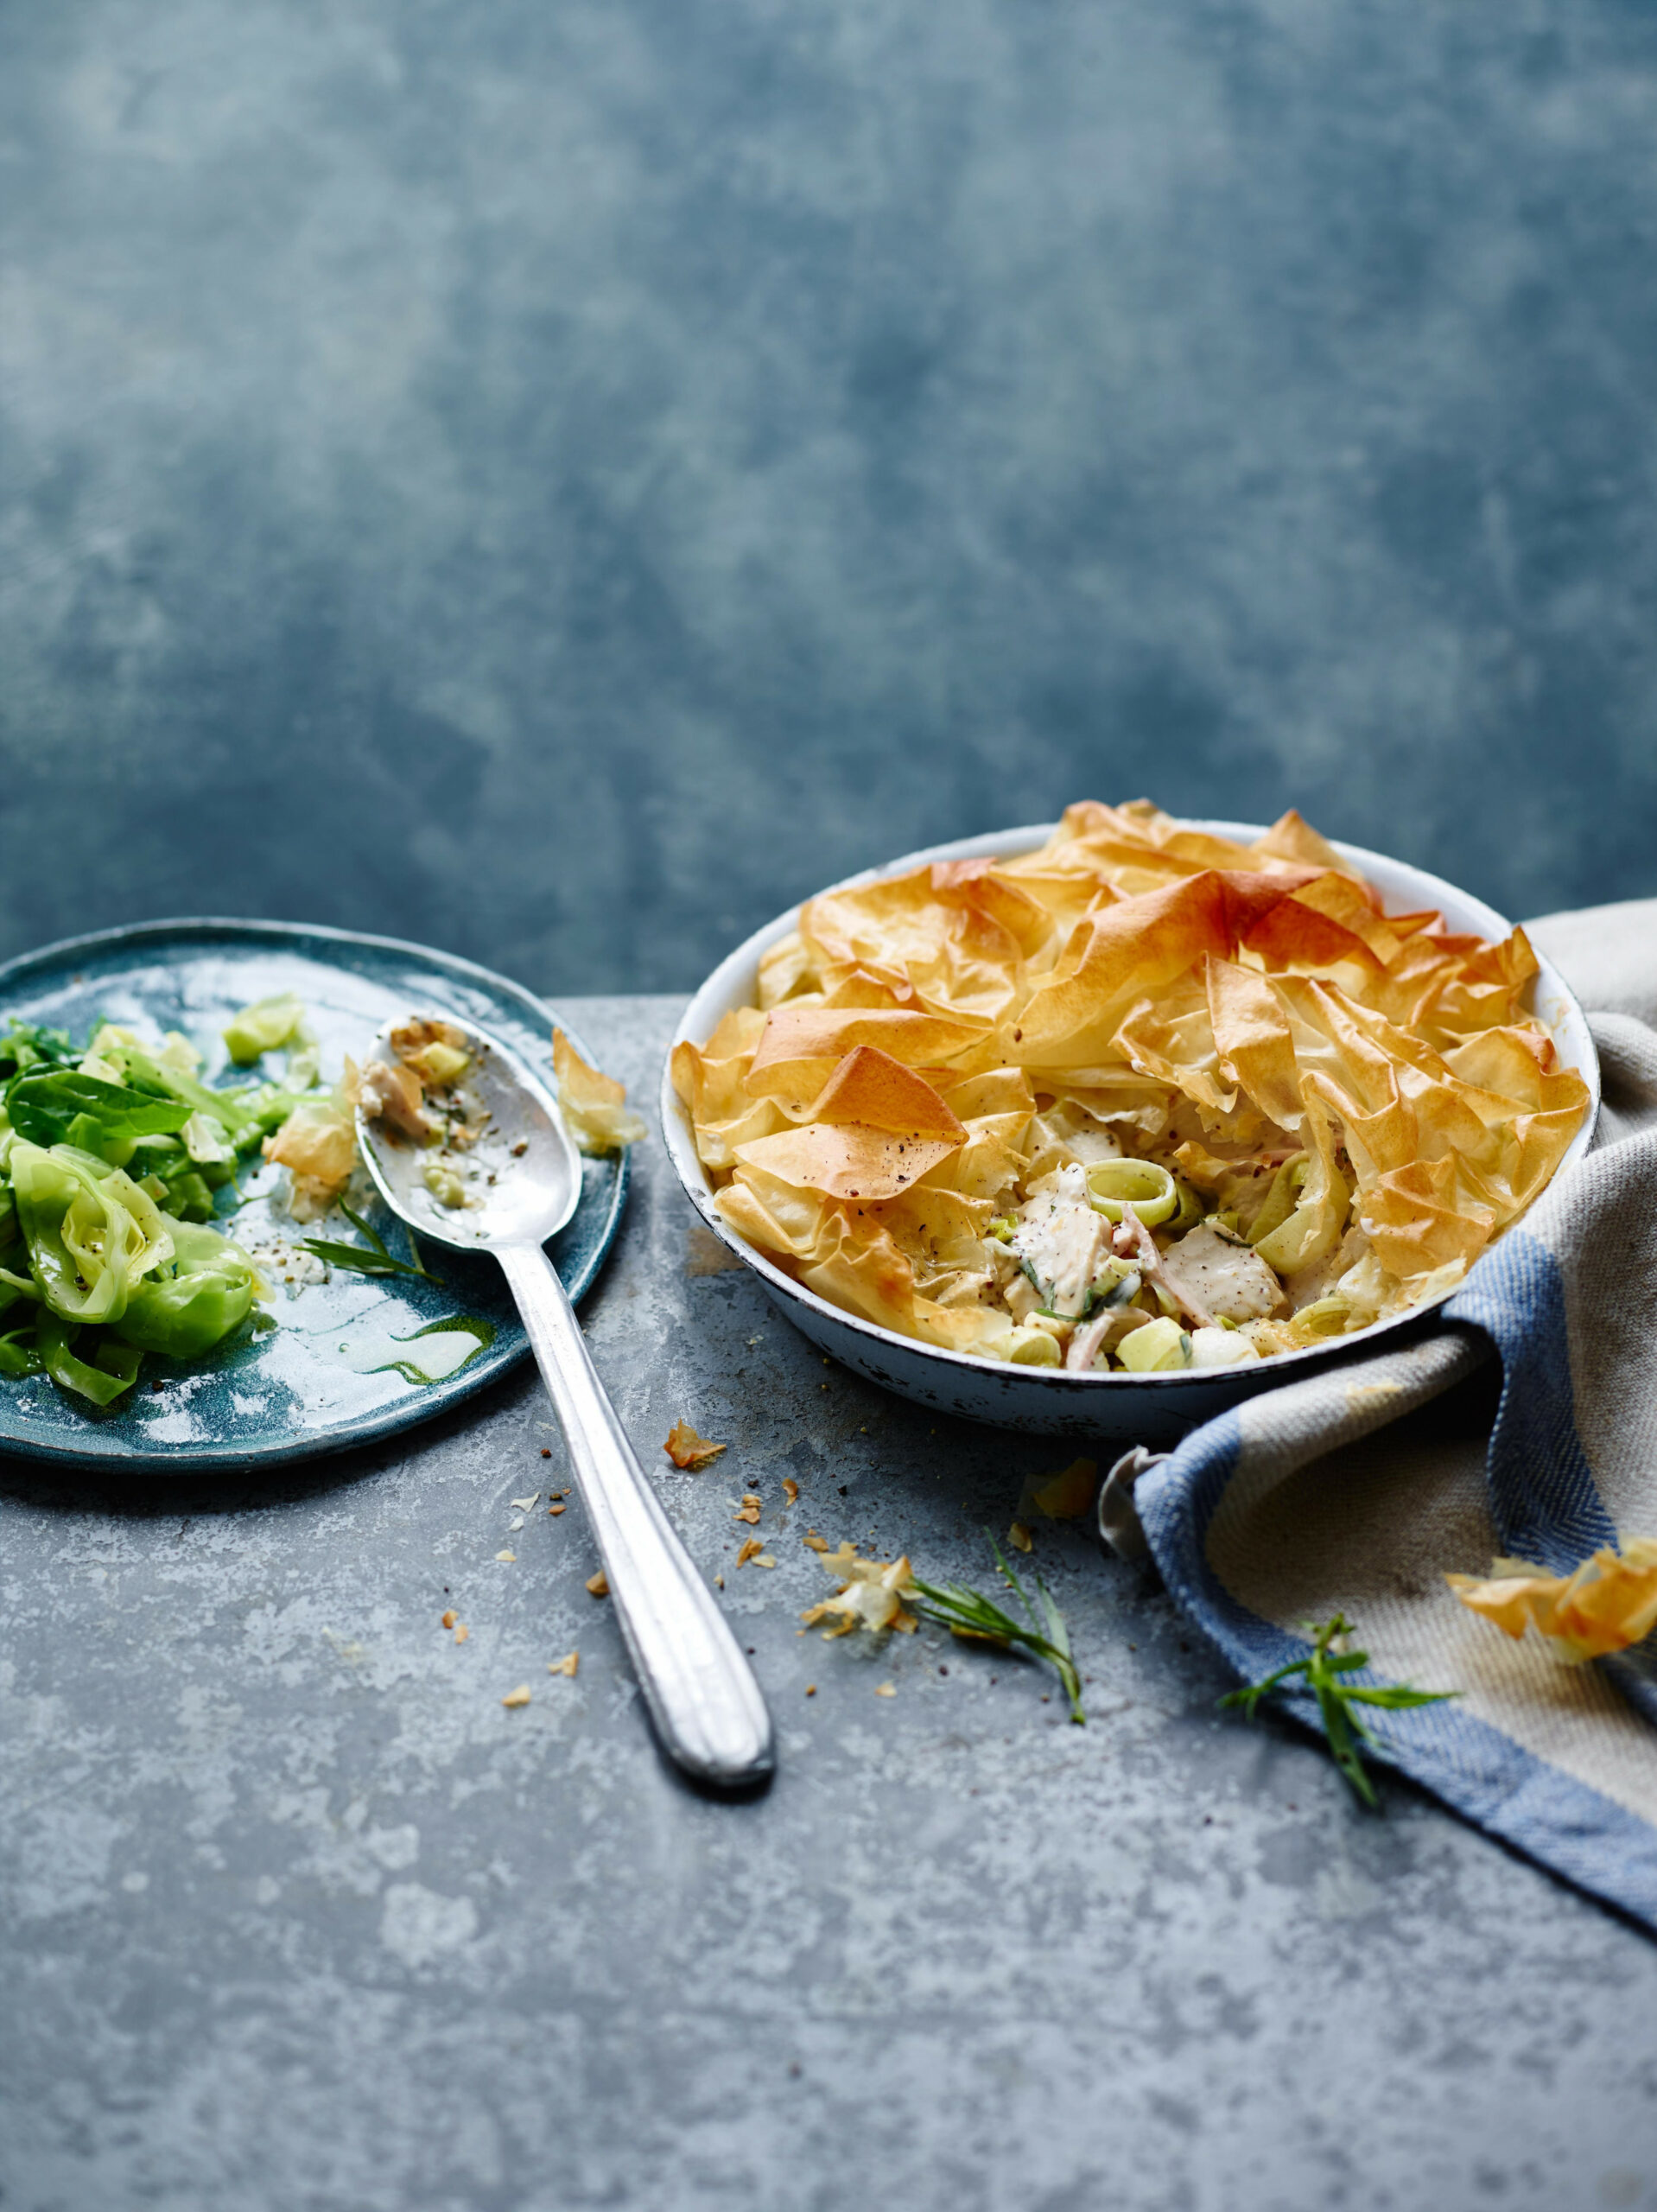 Joe Wicks Reveals His Easy Recipes For A Lean And Healthy 12 - Joe Wicks Recipes Chicken Pie